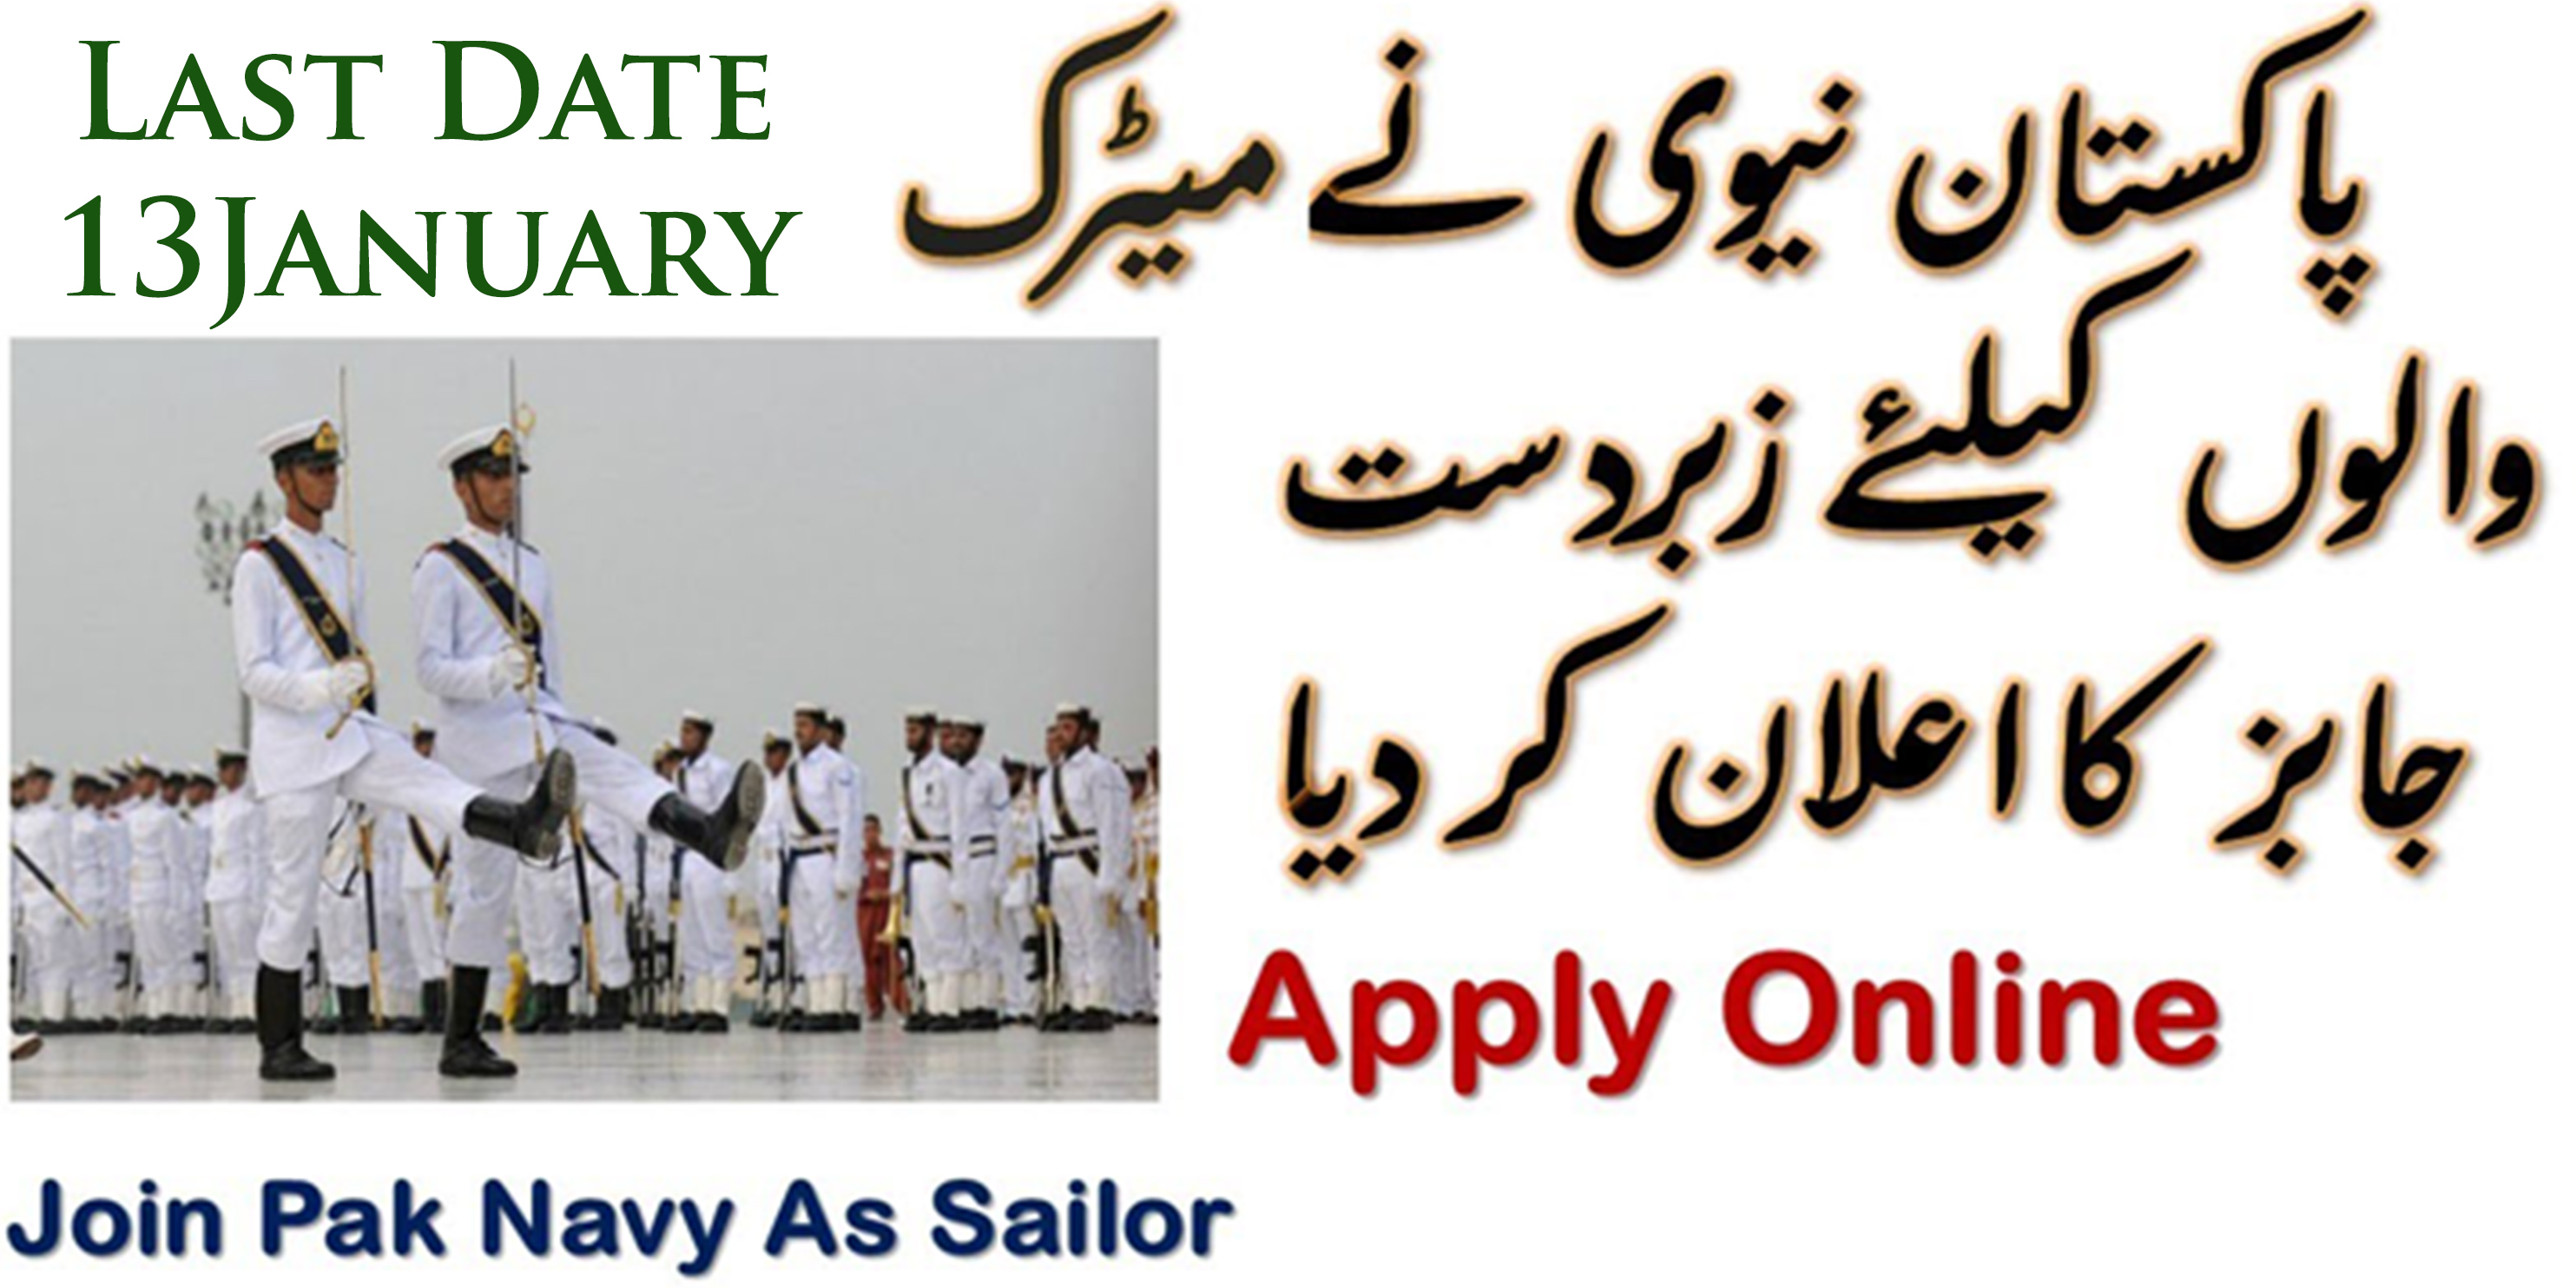 Pakistan Navy Sailor Jobs 2019 - Matric Level Jobs Join Pak Navy